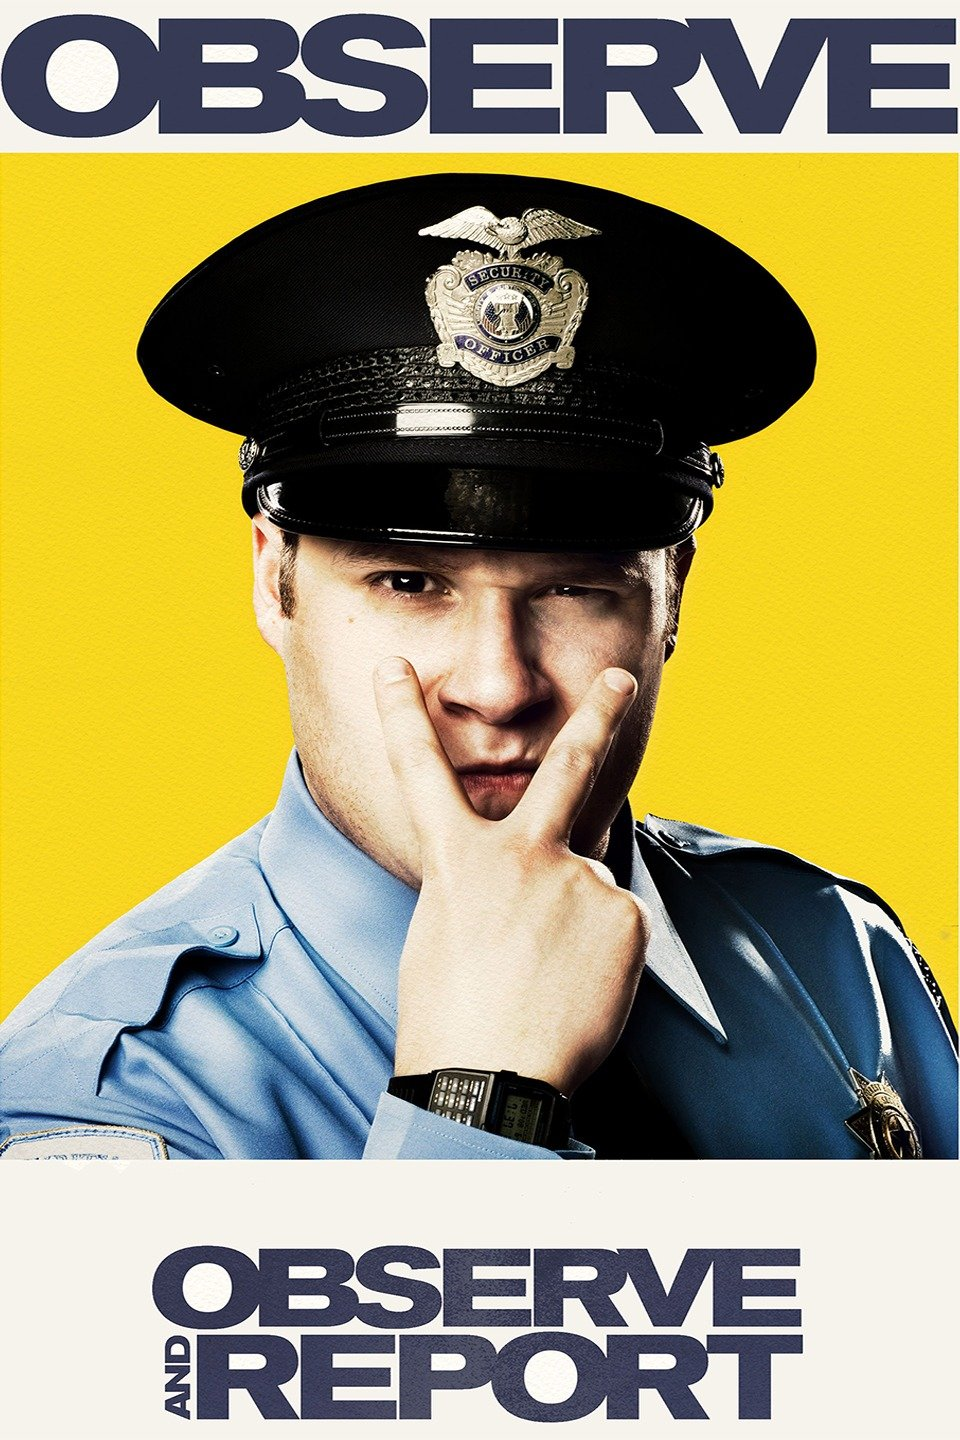 Observe and Report (2009) - Directed by: Jody HillStarring: Seth Rogen, Anna Faris, Ray Liota, Michael Pena, Jesse PlemmonsRated: R for Pervasive Language, Graphic Nudity, Drug Use, Sexual Content and ViolenceRunning Time: 1h 26mTMM Score: 3 StarsSTRENGTHS: Pitch Black Humor, Seth RogenWEAKNESSES: Weak Story, One Joke Goes Too Far, Anna Faris, Too Silly